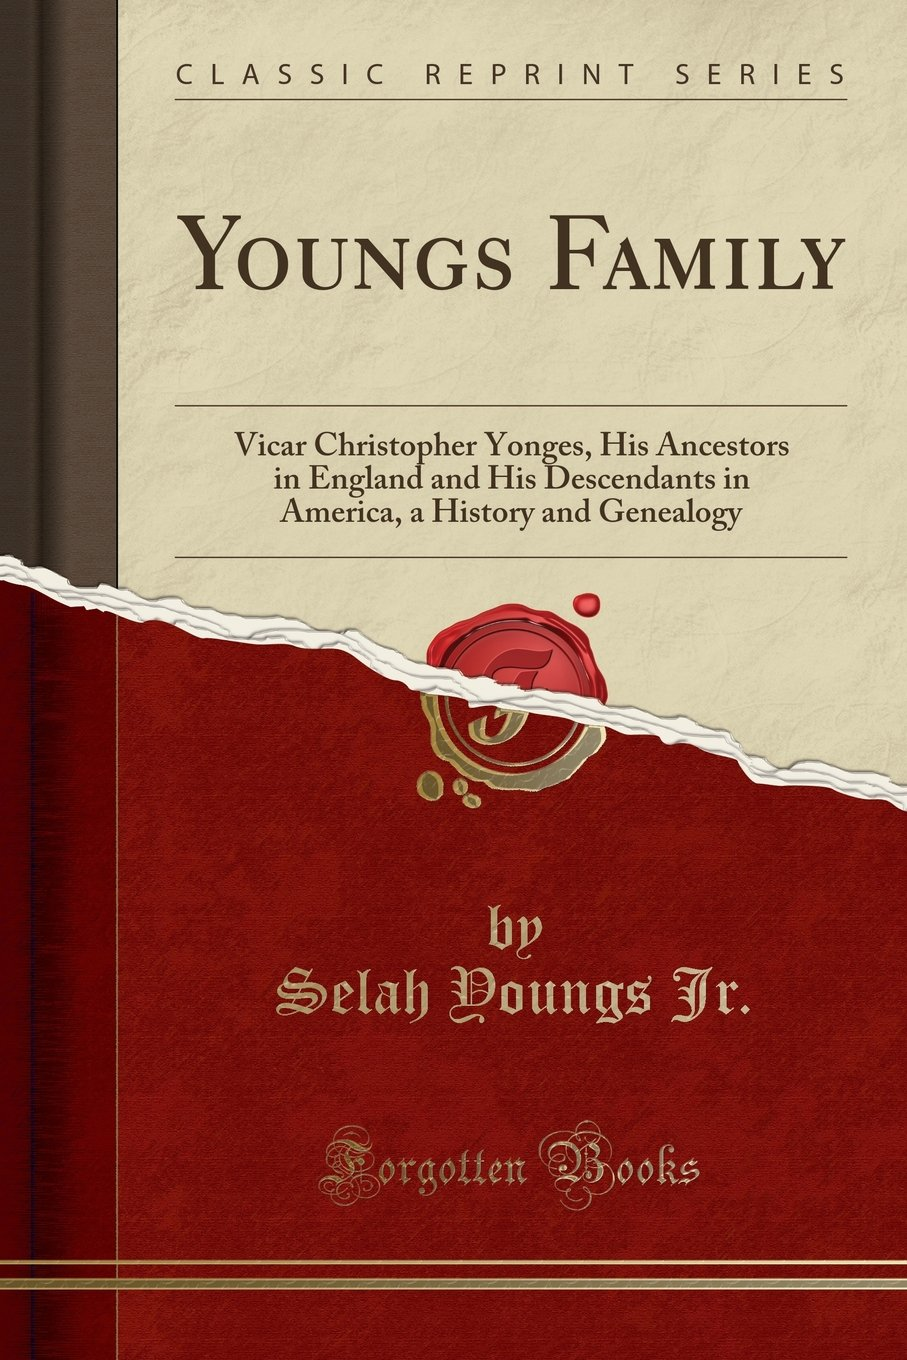 Download Youngs Family: Vicar Christopher Yonges, His Ancestors in England and His Descendants in America, a History and Genealogy (Classic Reprint) pdf epub